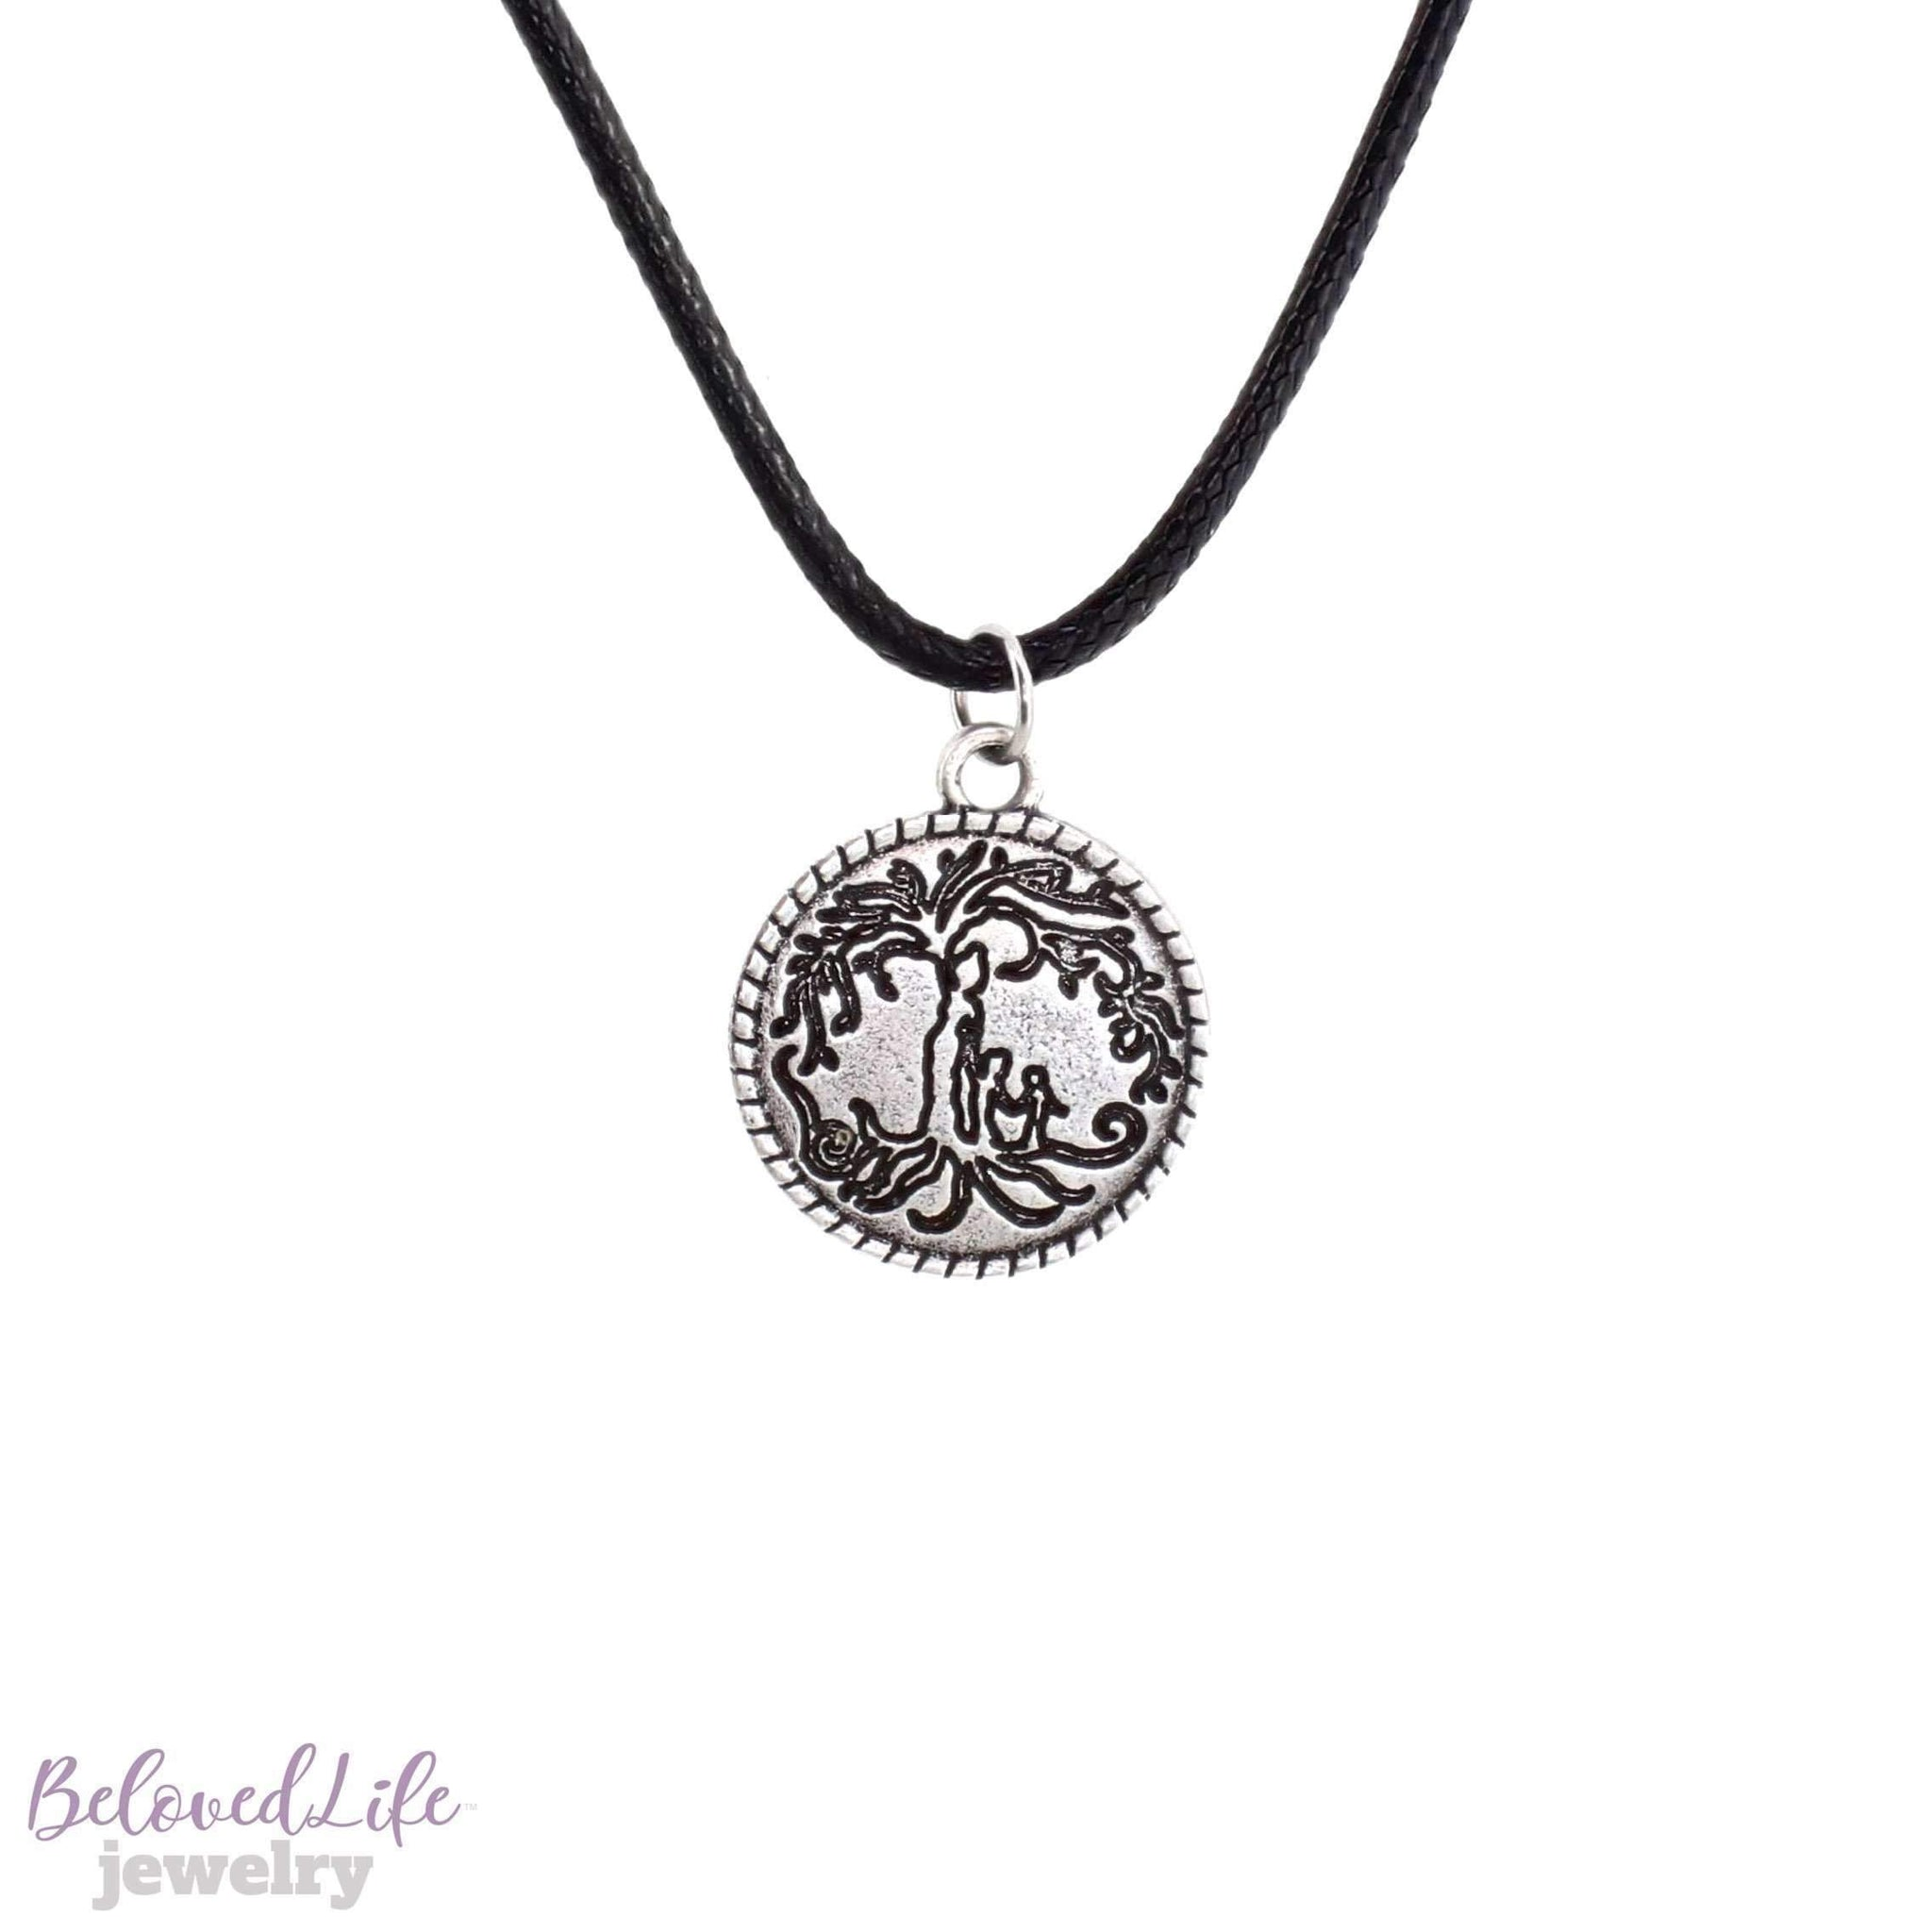 Beloved Life Jewelry: Mom & 2 Child 'Tree of Life' Coin Pendant Necklace [Antique Silver]